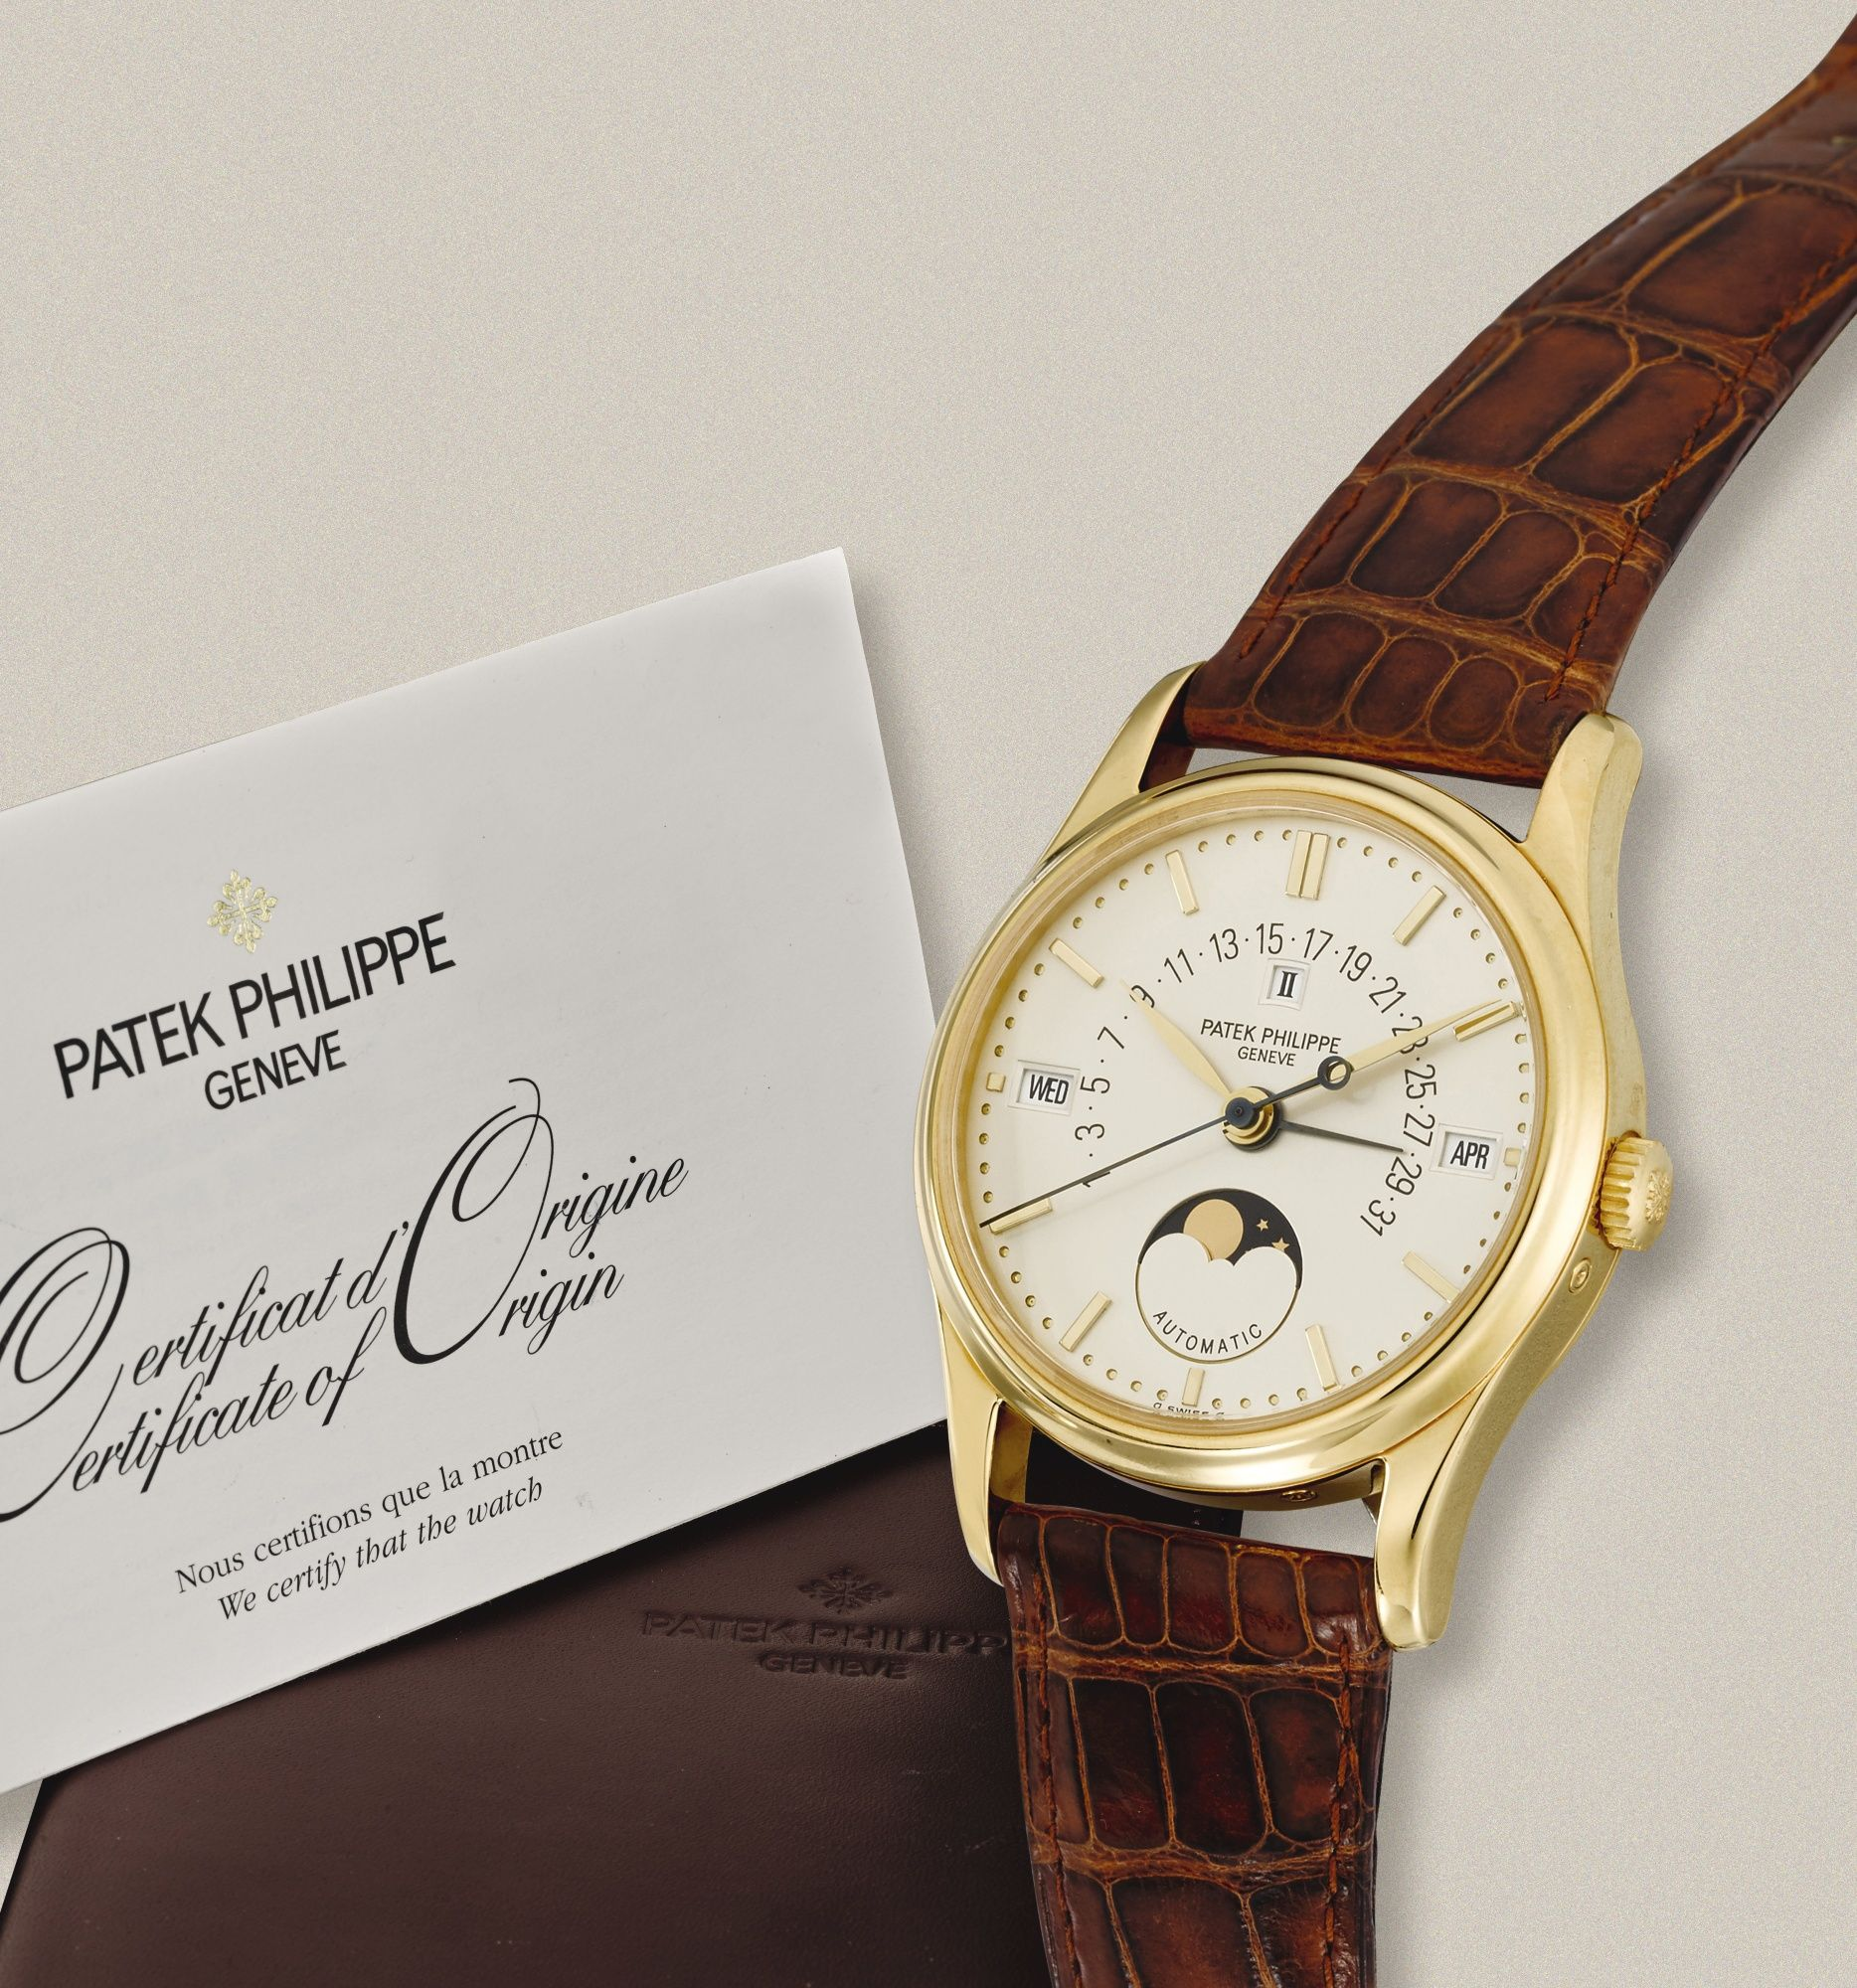 Patek Philippe A FINE YELLOW GOLD AUTOMATIC PERPETUAL CALENDAR WRISTWATCH  WITH RETROGRADE DATE AND MOON-PHASES REF 5050J MVT 1957395 CASE 2961843  MADE IN ... 4afef22cb250